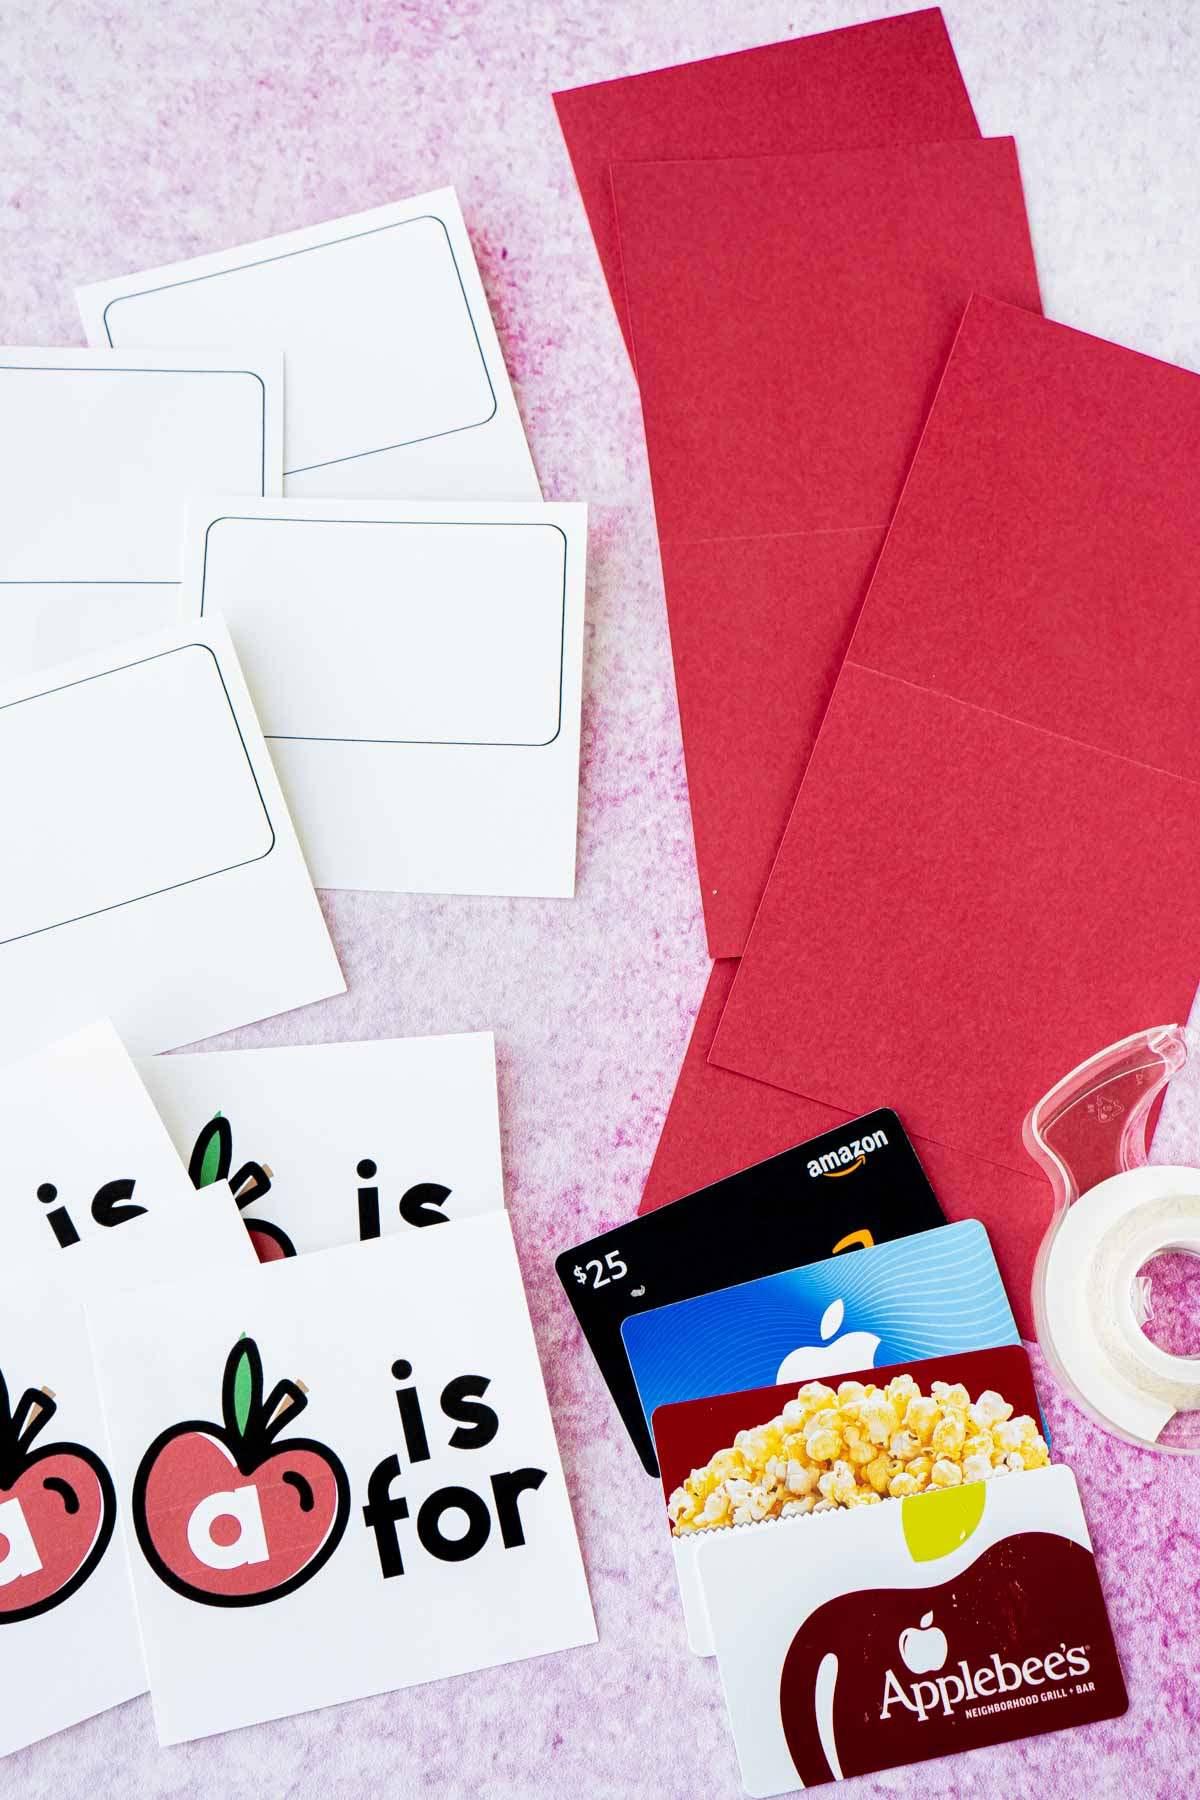 Apple cards, gift cards, and red cardstock in a flat lay